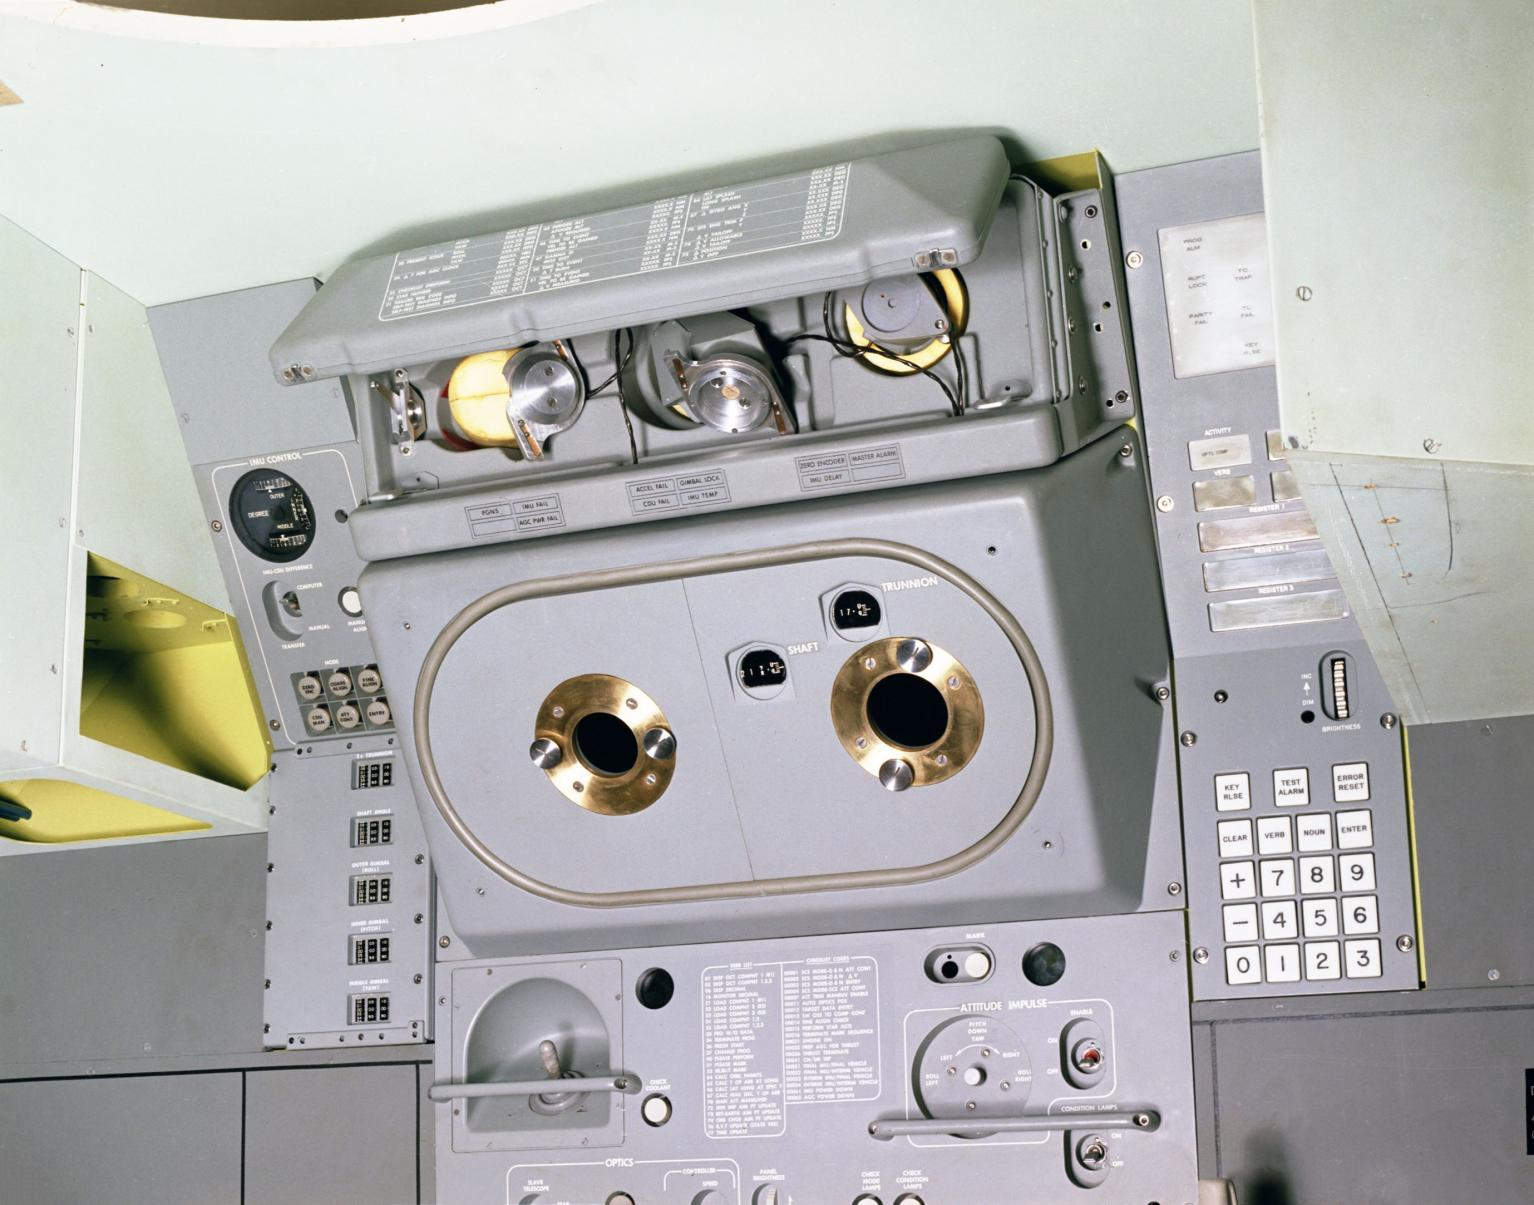 Mock-Up of the Apollo Primary Guidance, Navigation, and Control System